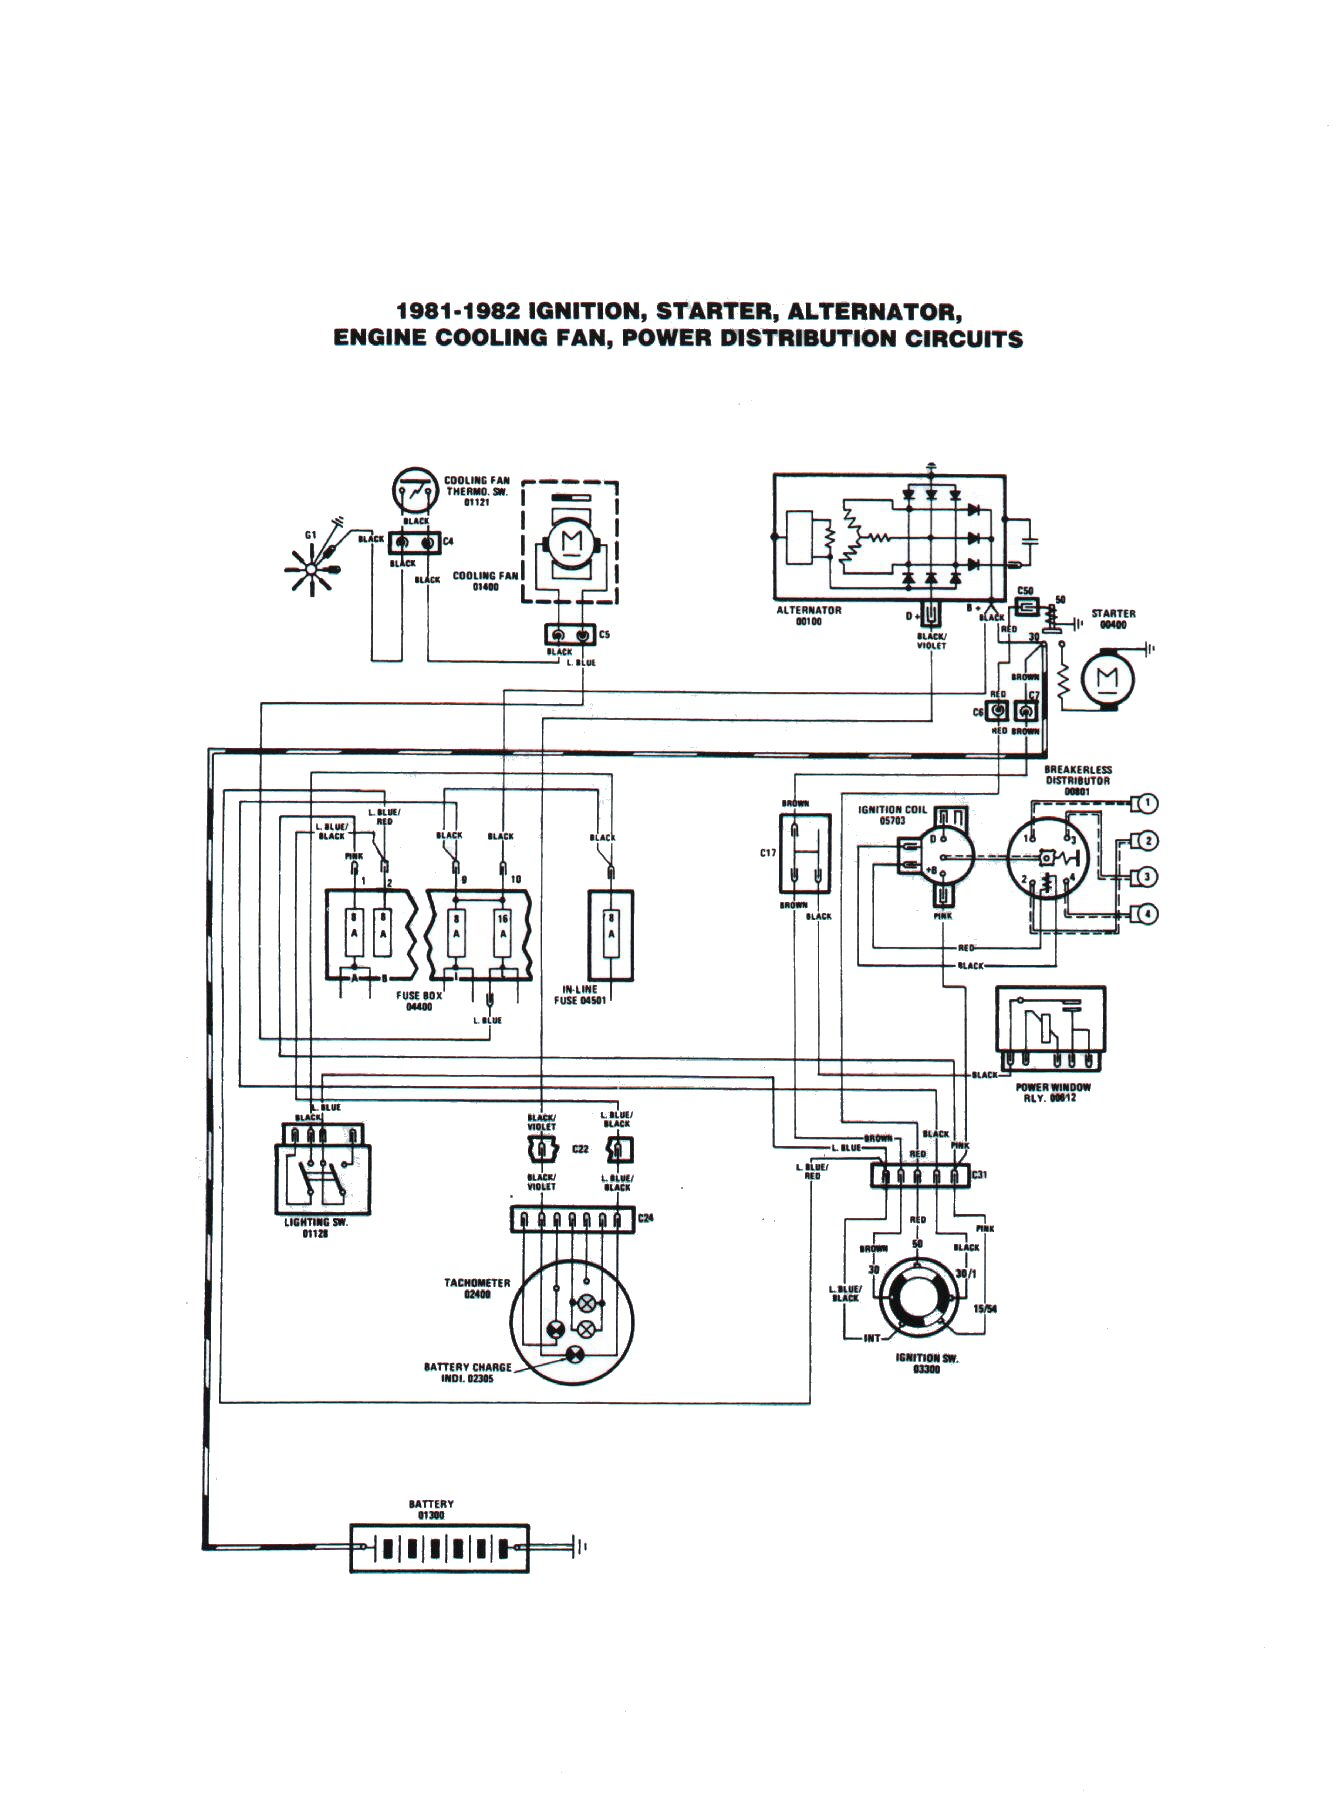 Fiat 124 Spider Electrical Schemes Starter Alternator Wiring Diagram Original Scheme